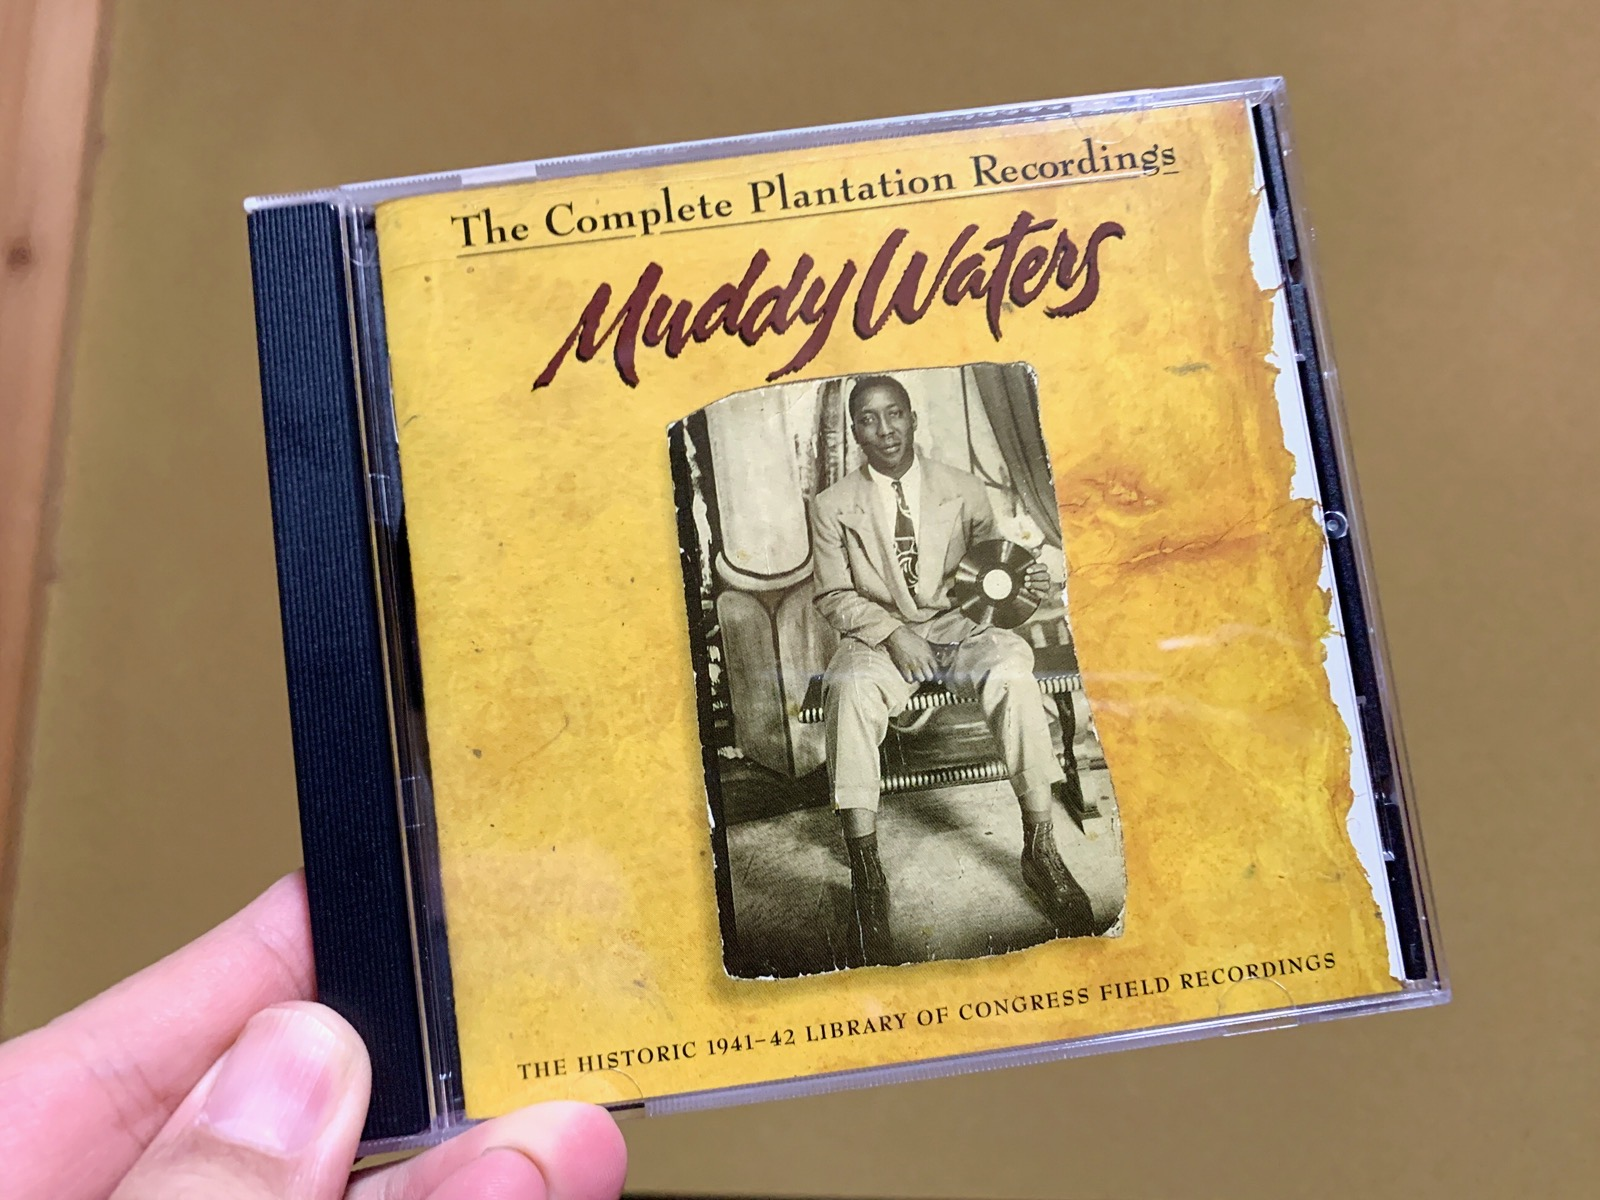 The Complete Plantation Recordings muddy